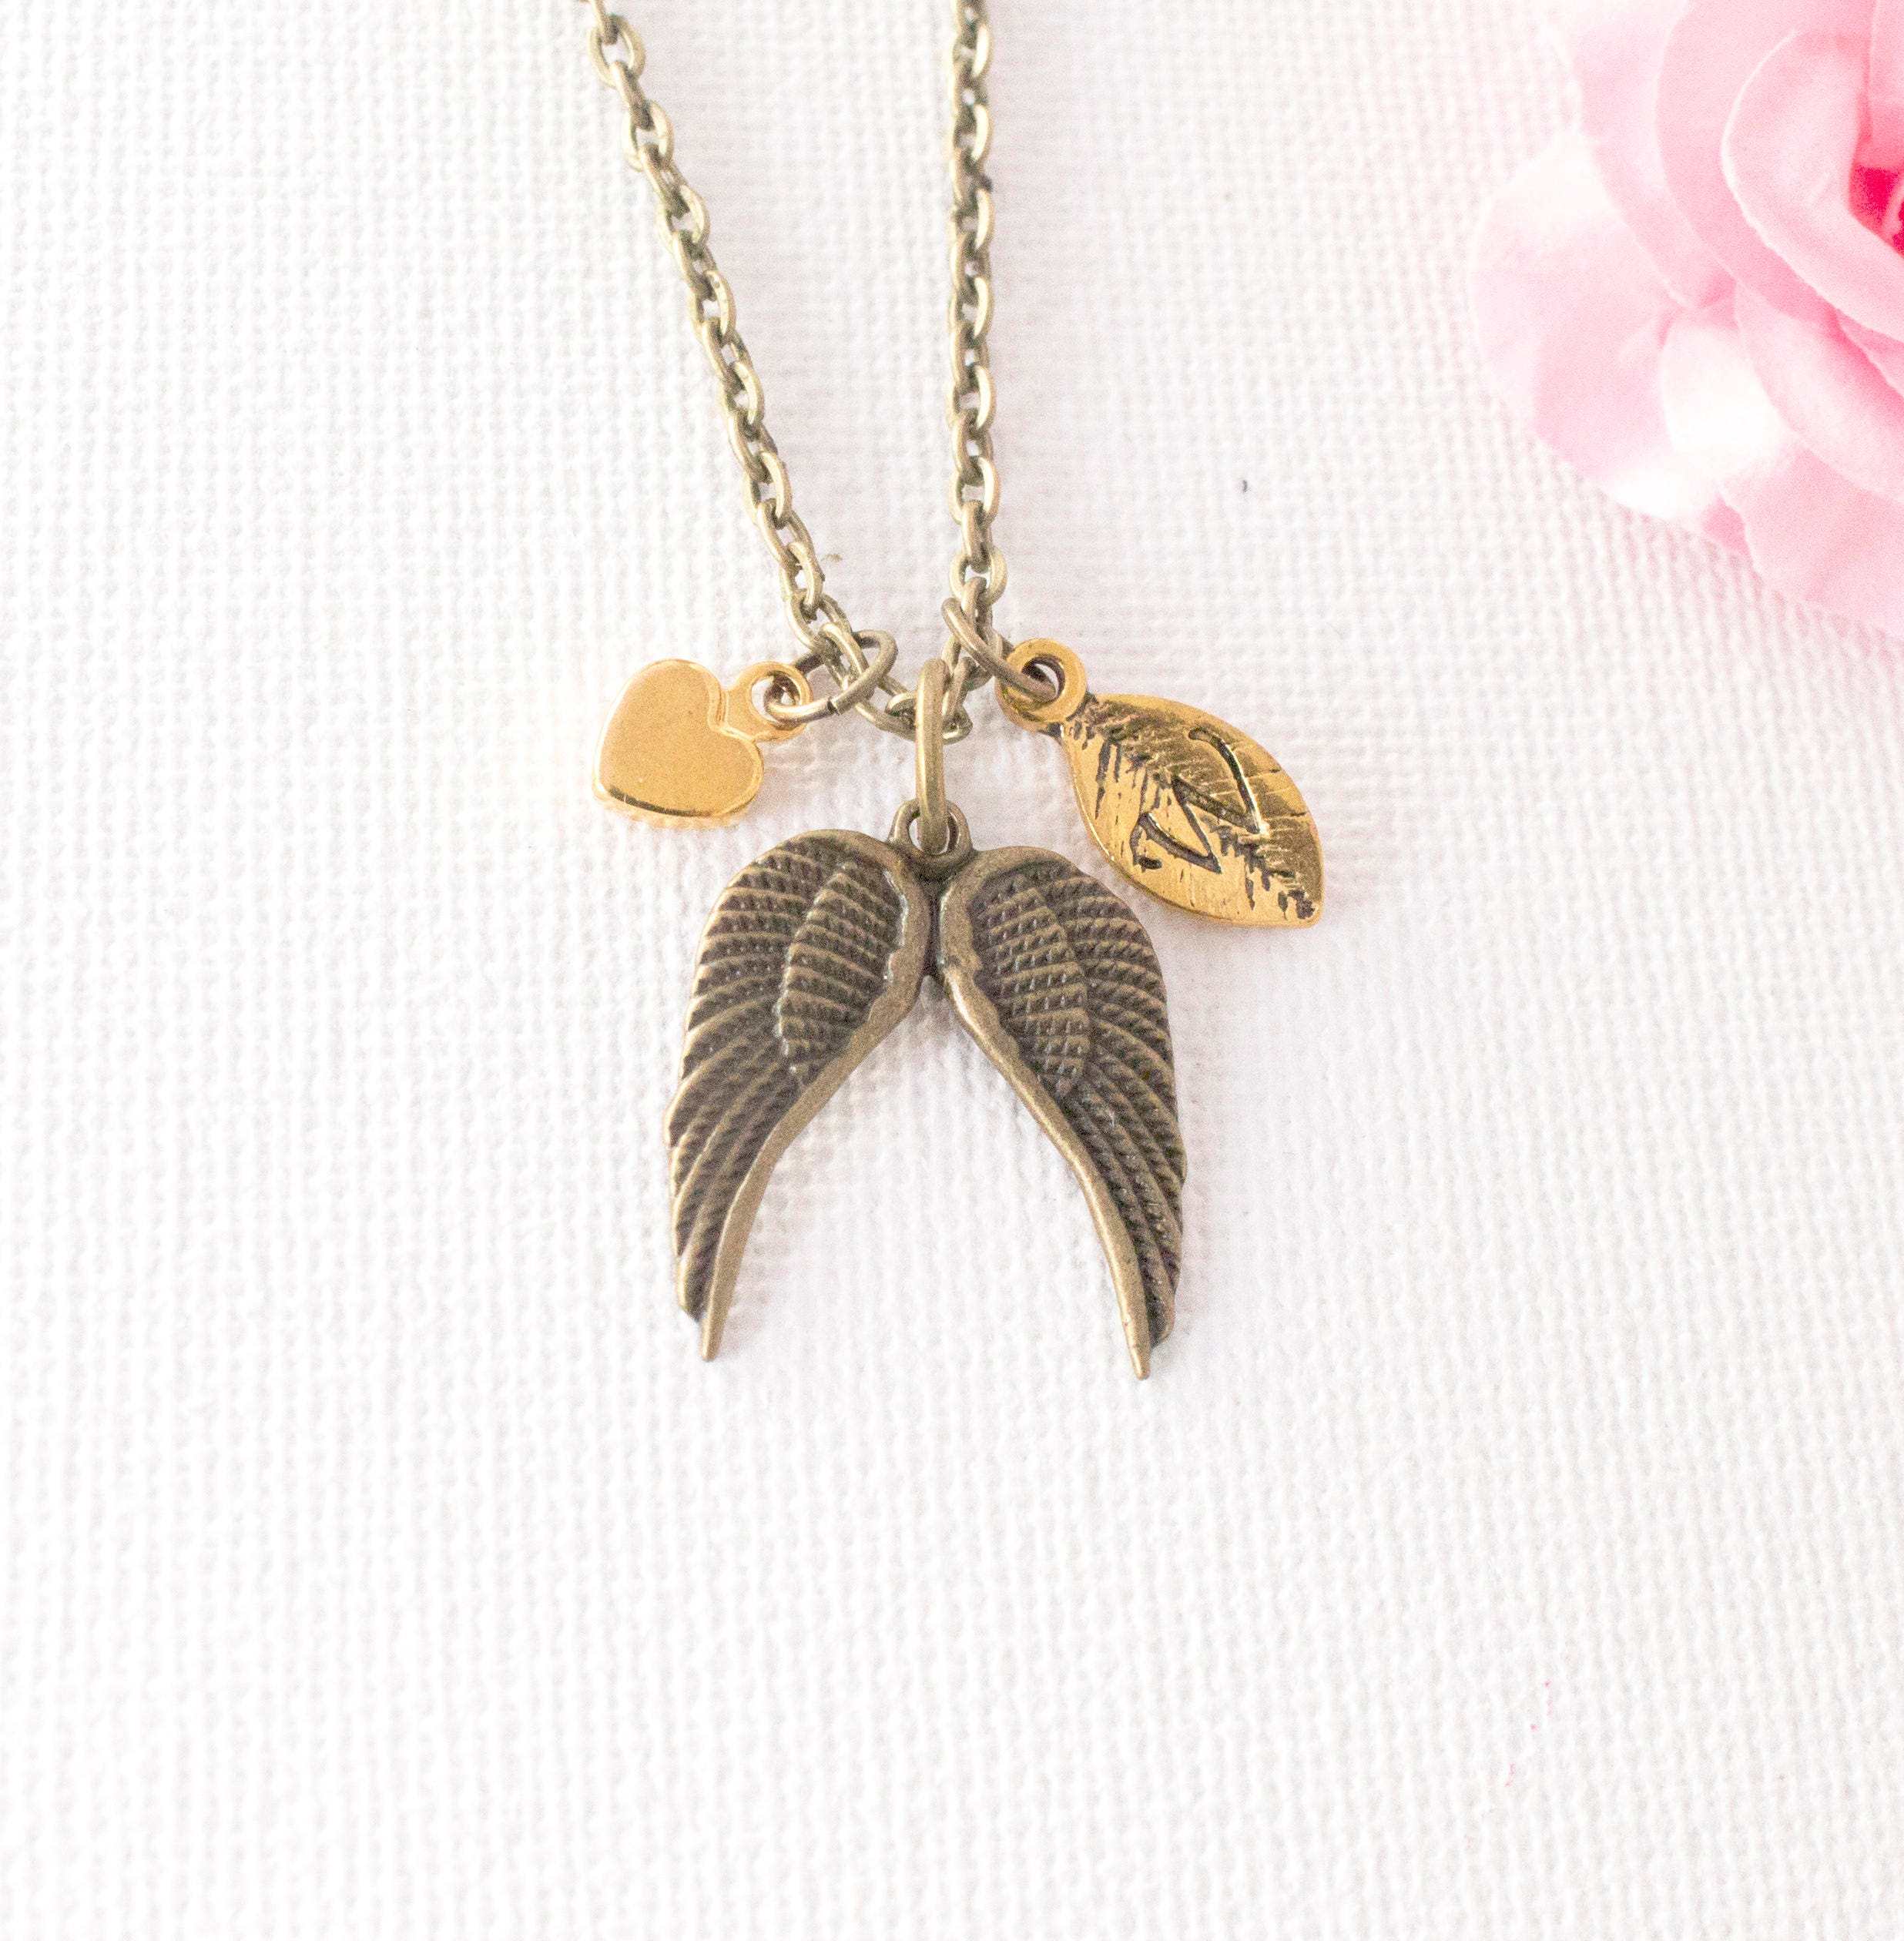 Bronze angel wing necklace loss necklace grievance necklace initial necklace angel wing jewellery angel wing